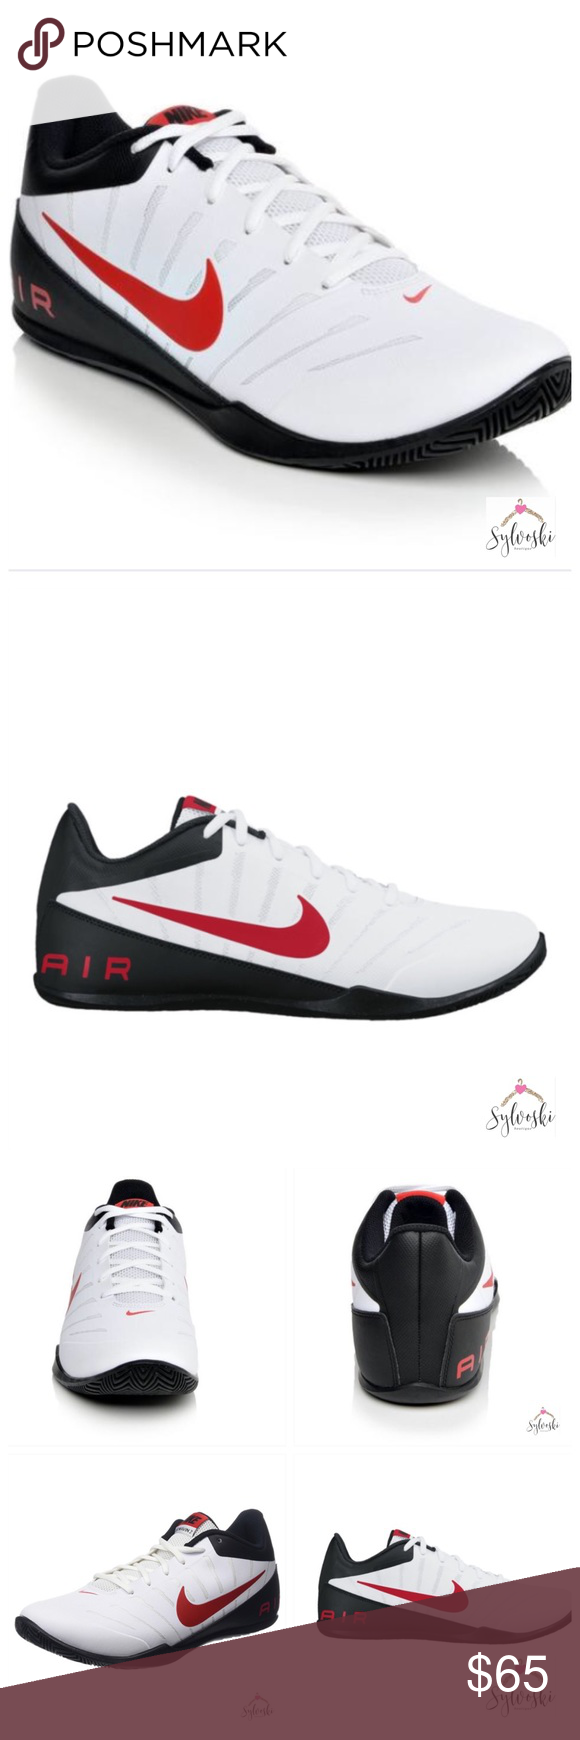 c190cd64fdf 🆕NIKE Men s Air Mavin Low 2 Basketball Shoe Delivers a combination of  lockdown